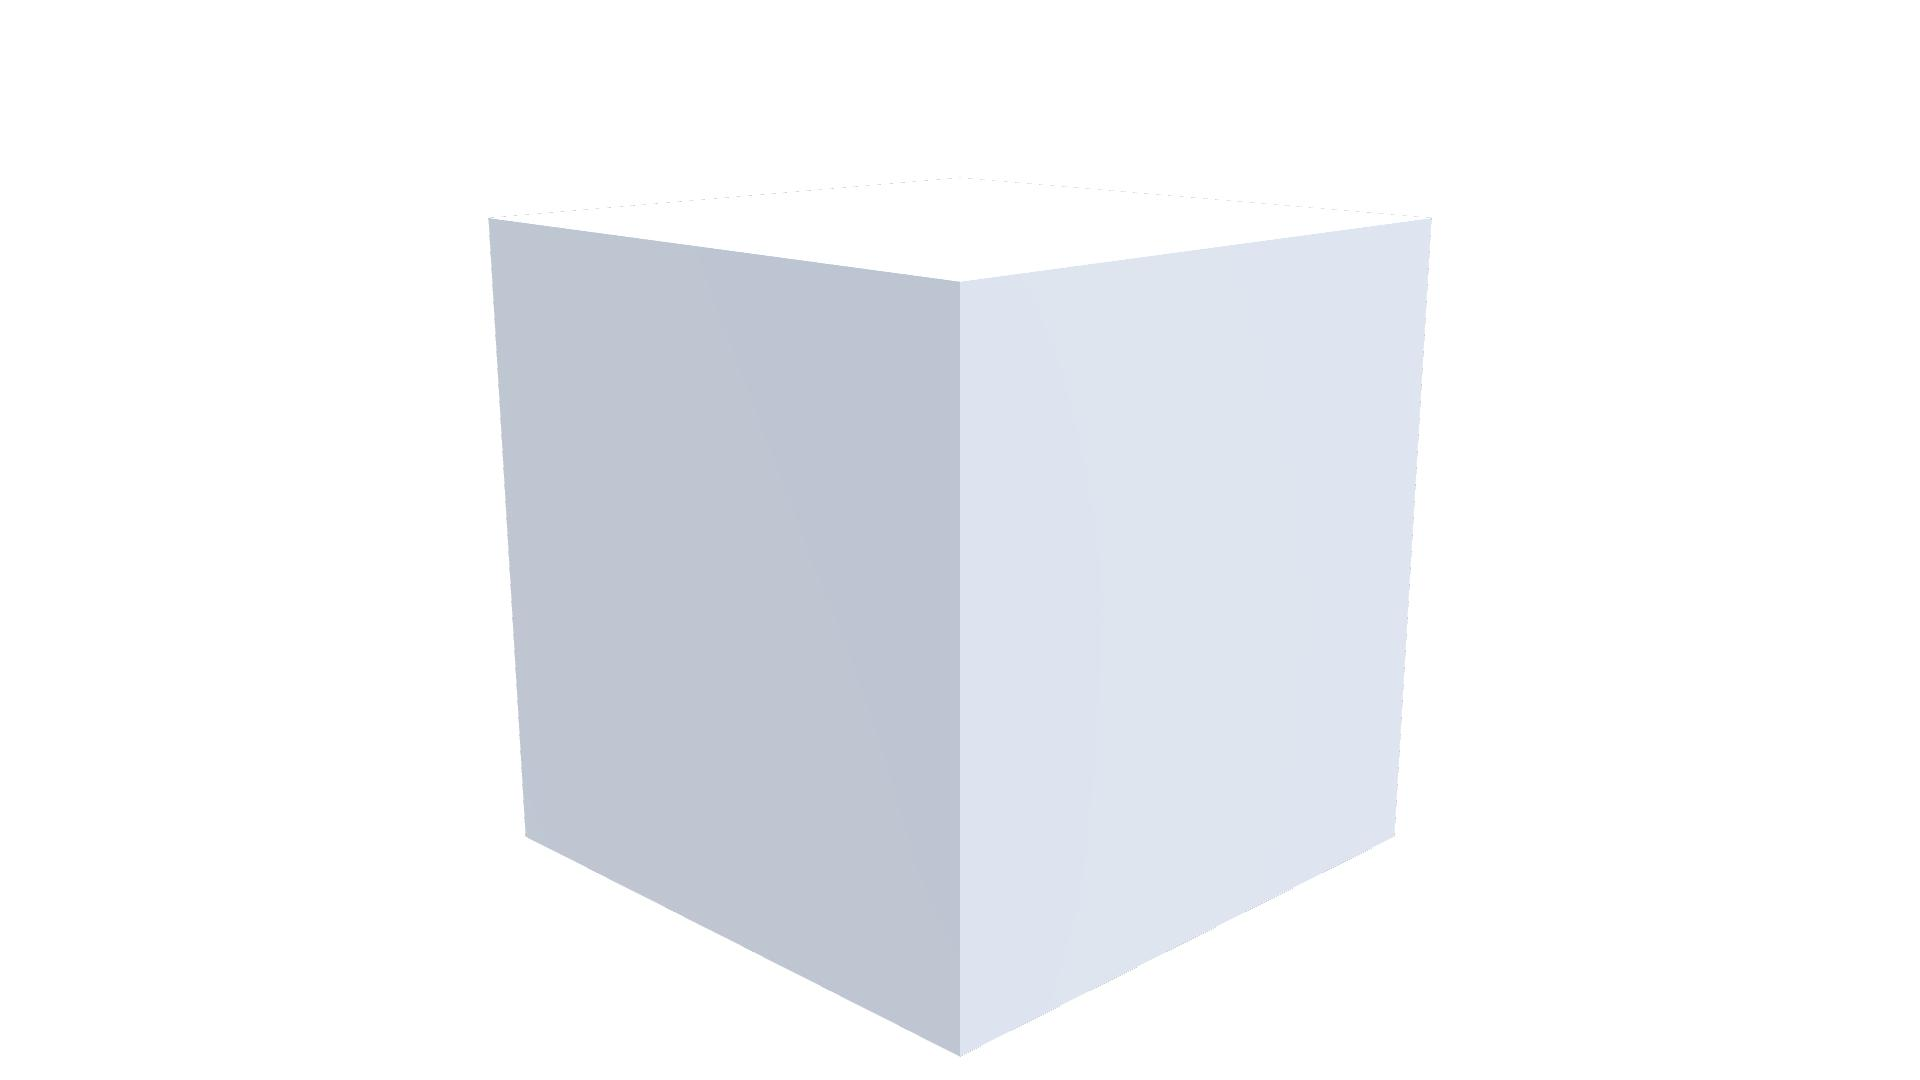 Box Obstacle